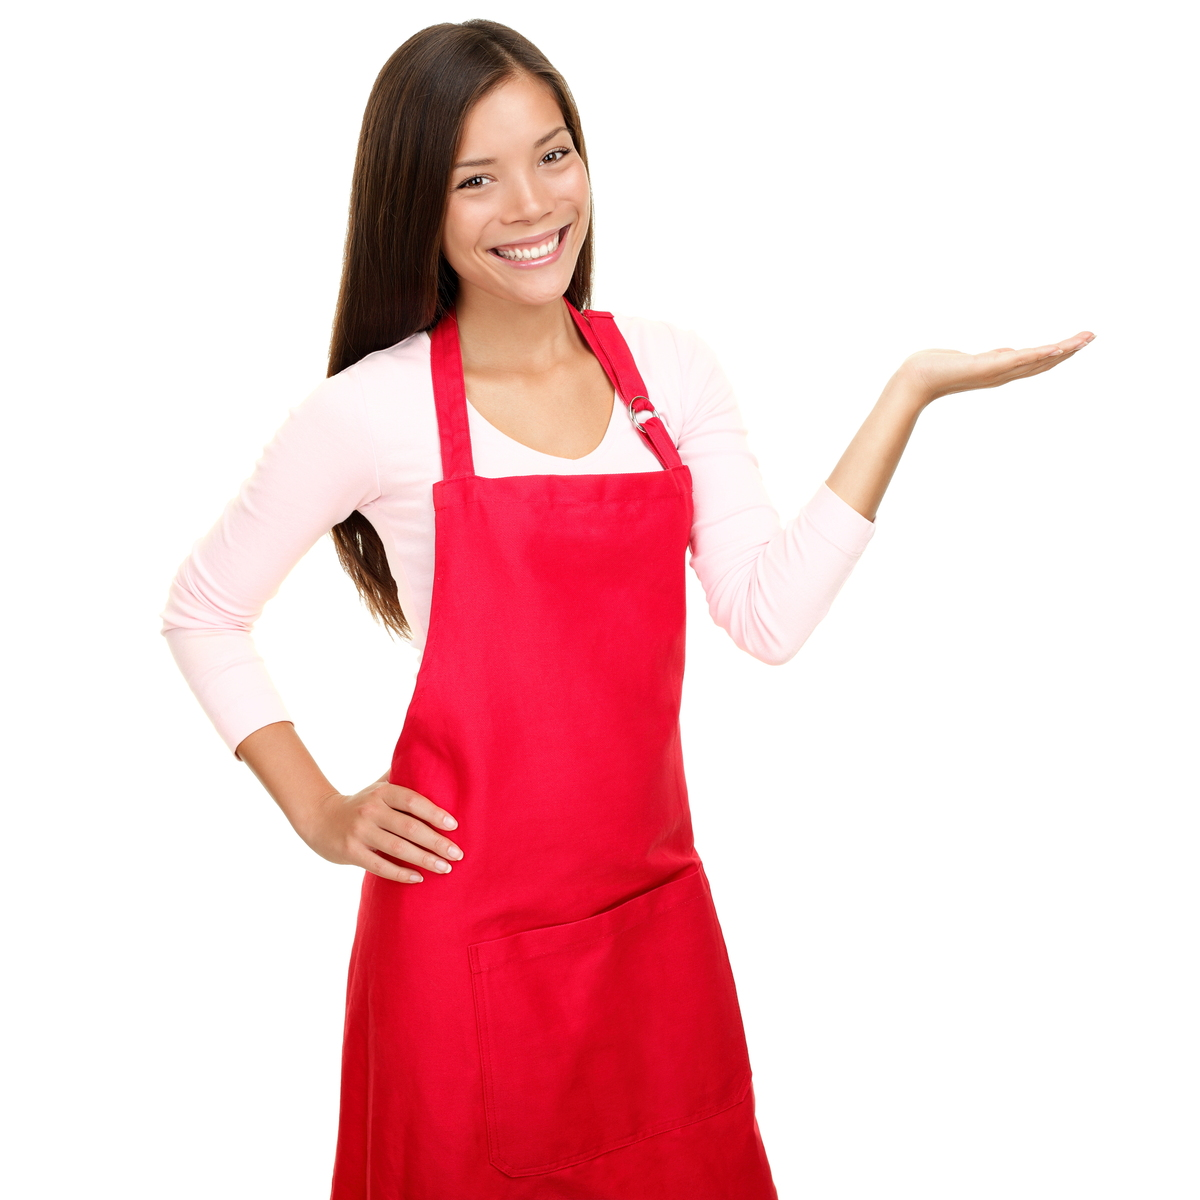 Smiling woman wearing a red apron.